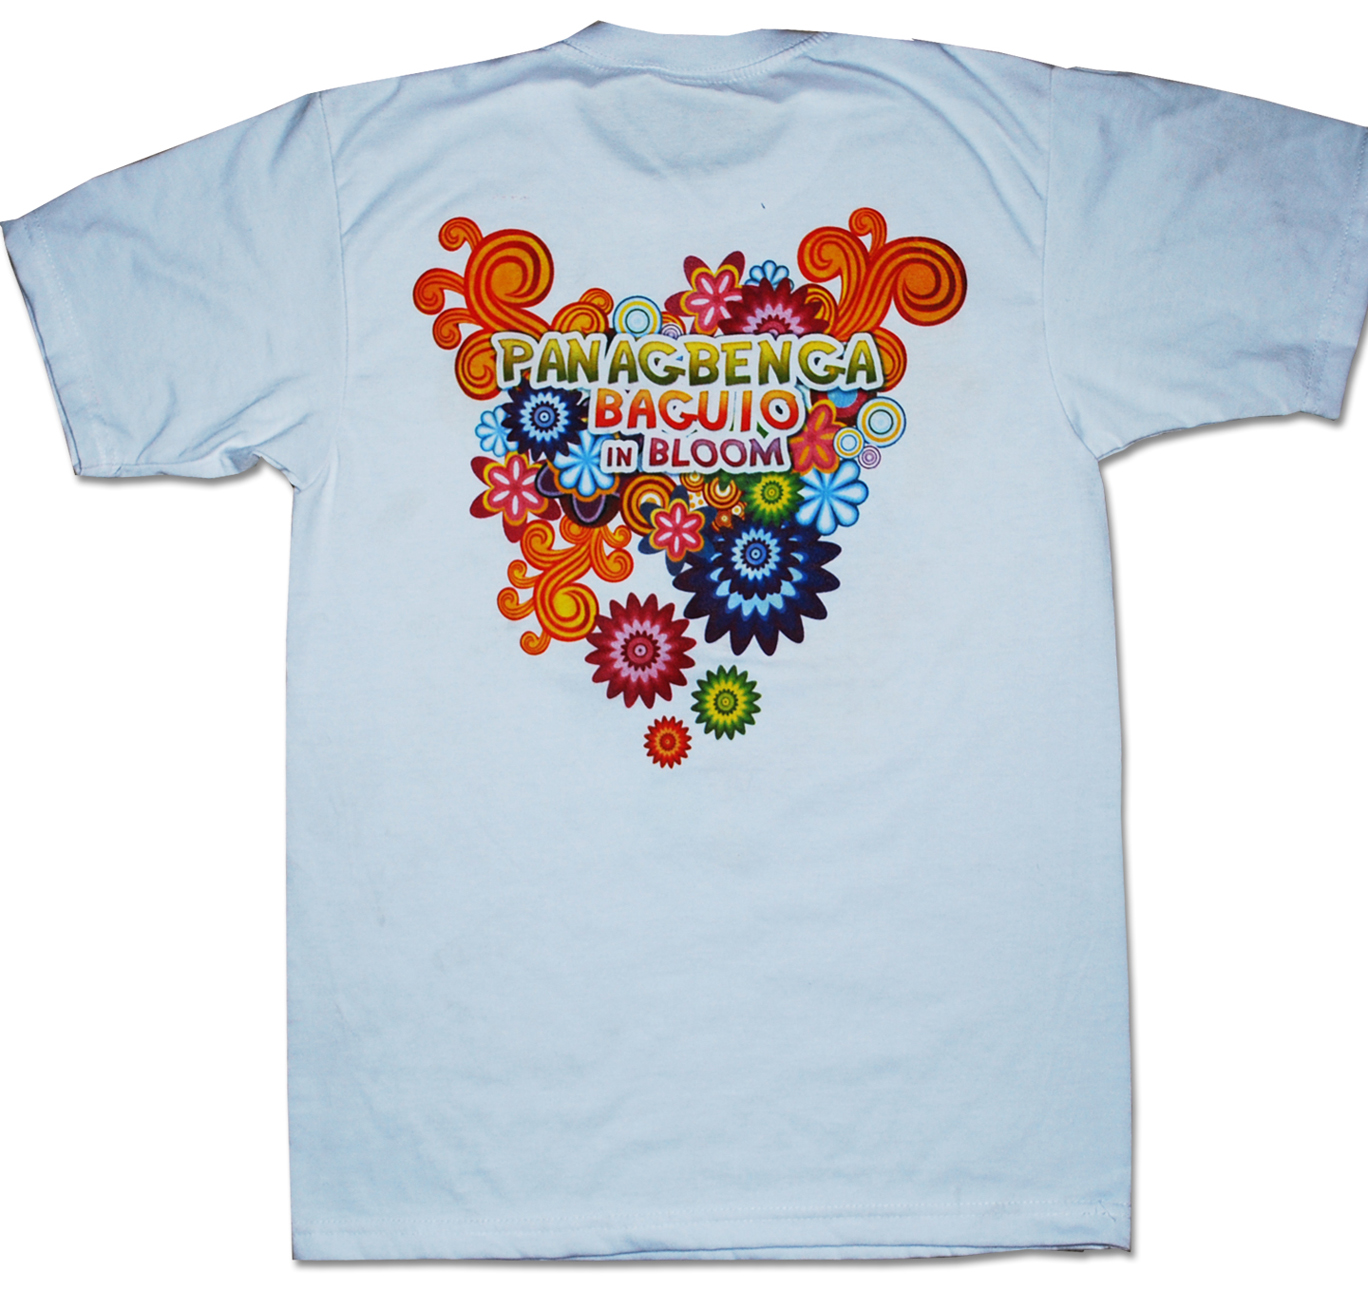 Sample print for How to start t shirt printing business